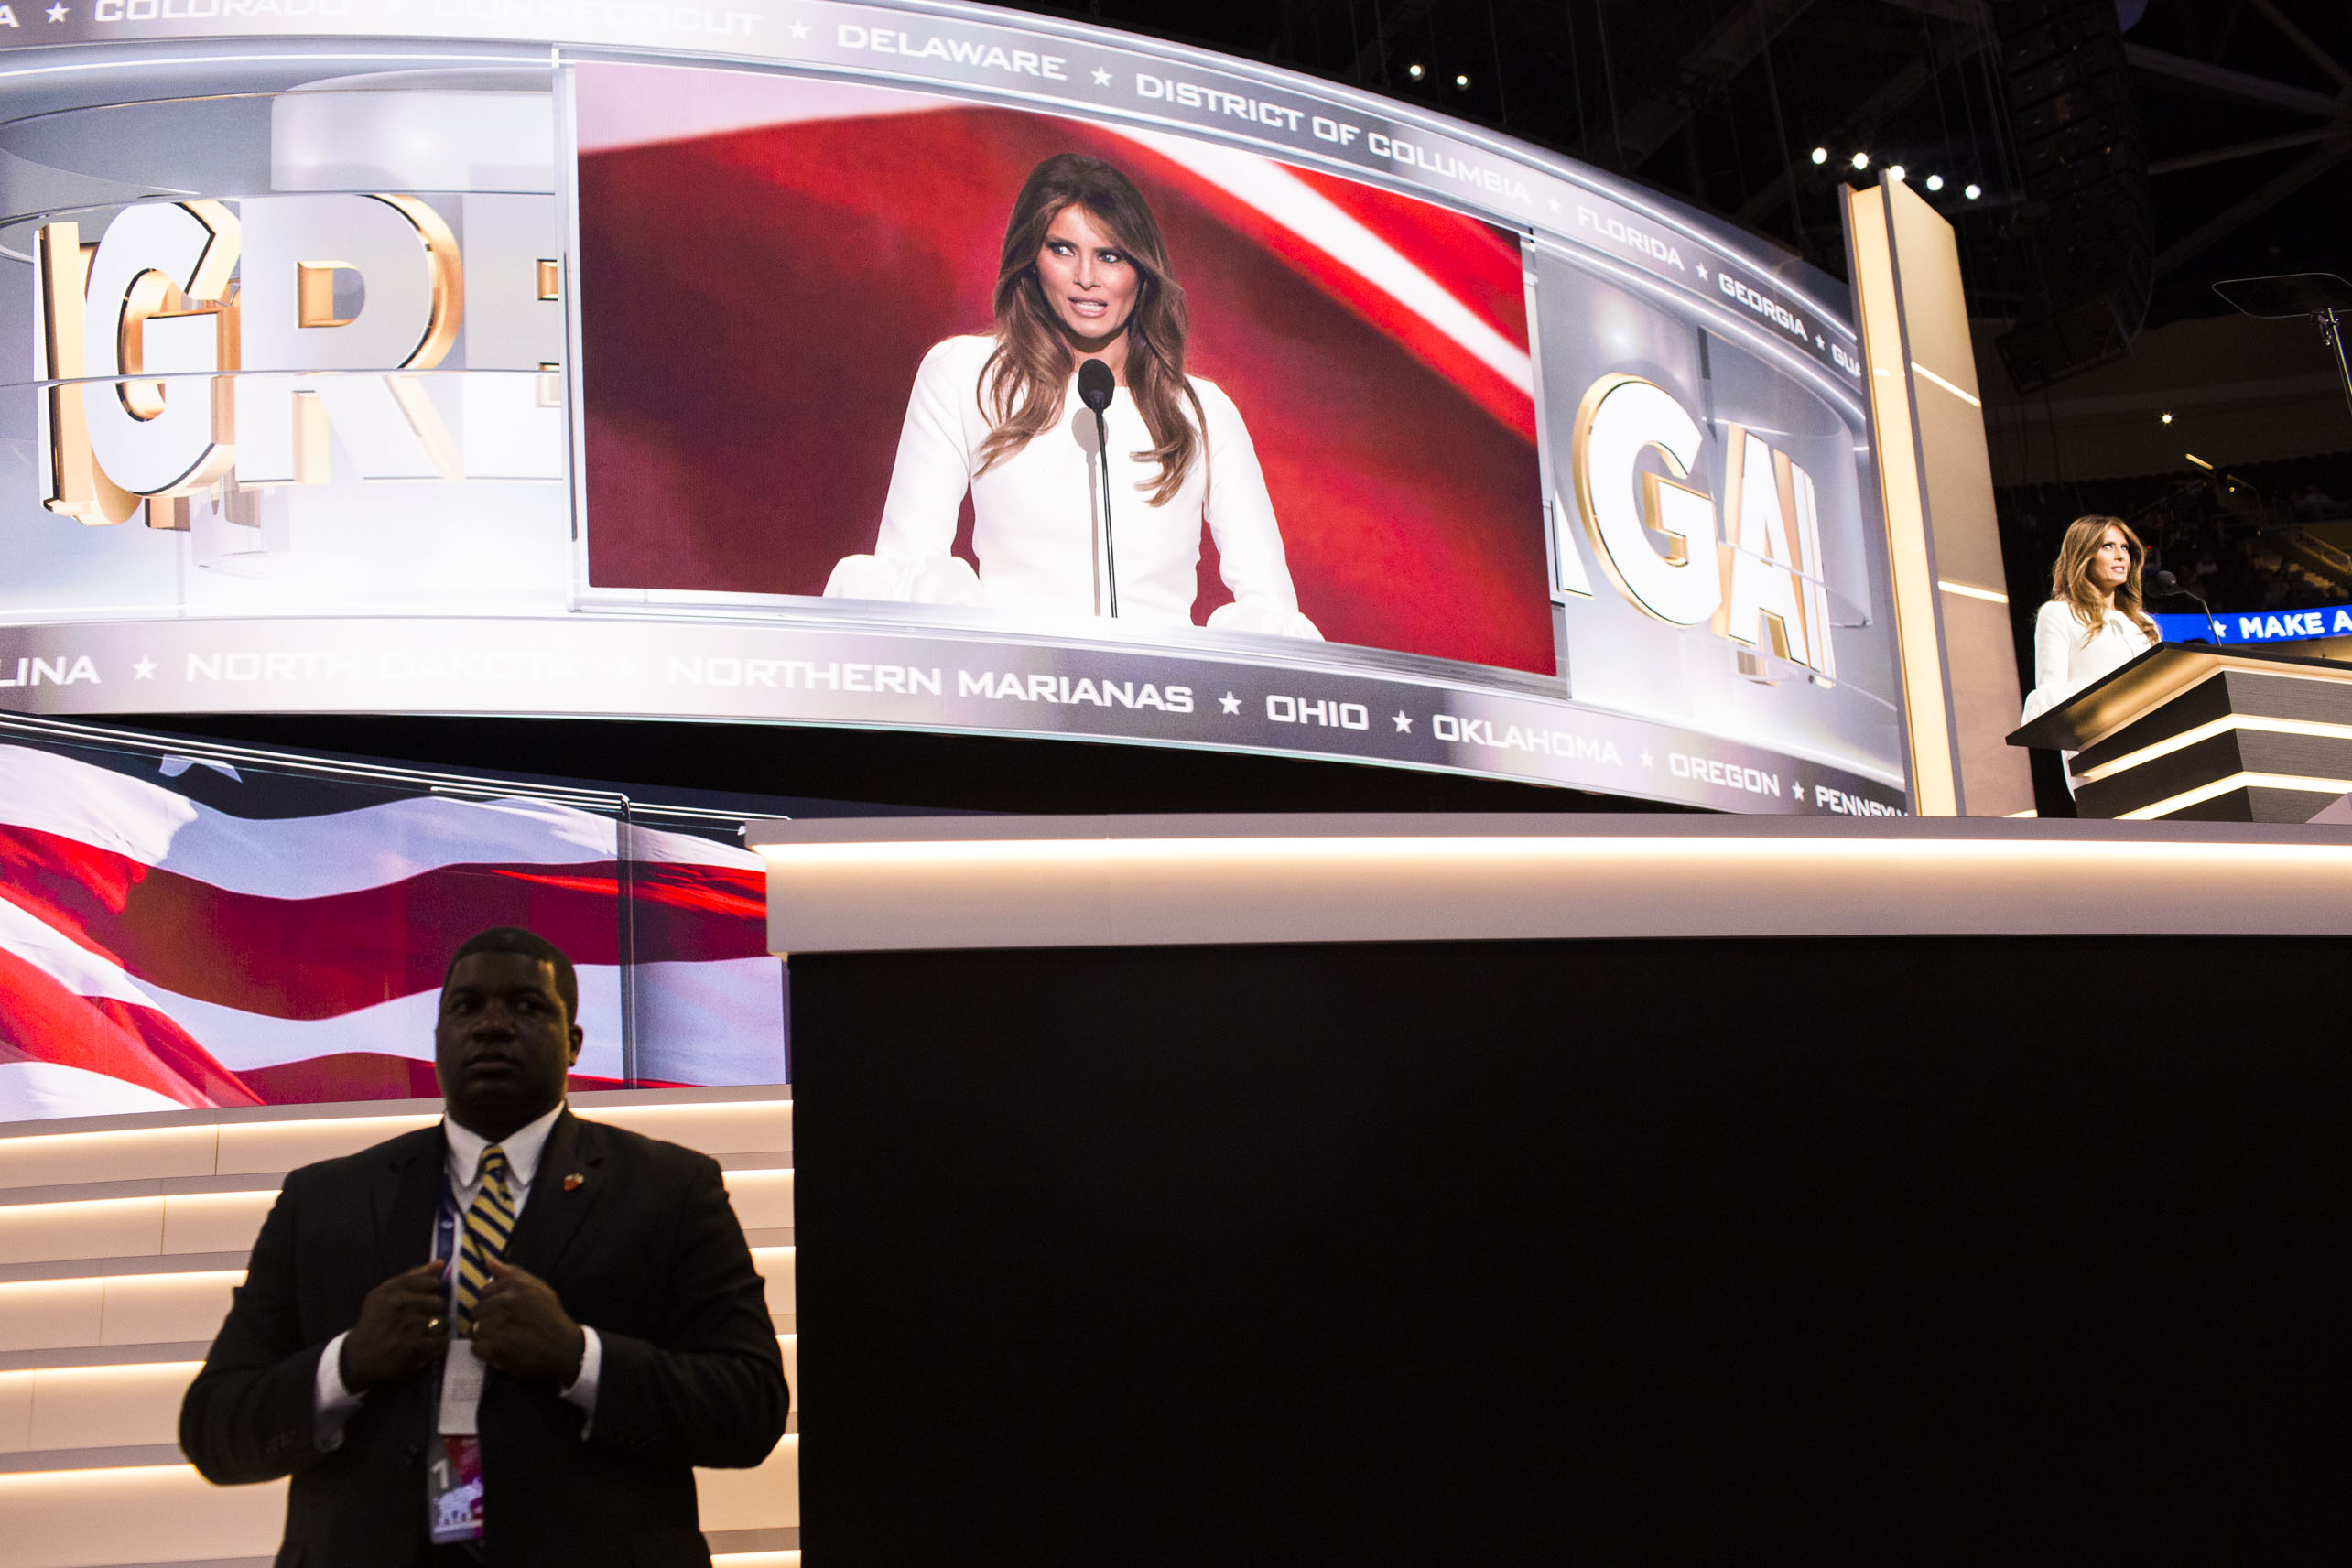 Melania Trump speaks to the crowd at the 2016 Republican National Convention on Monday, July 18, 2016, in Cleveland.